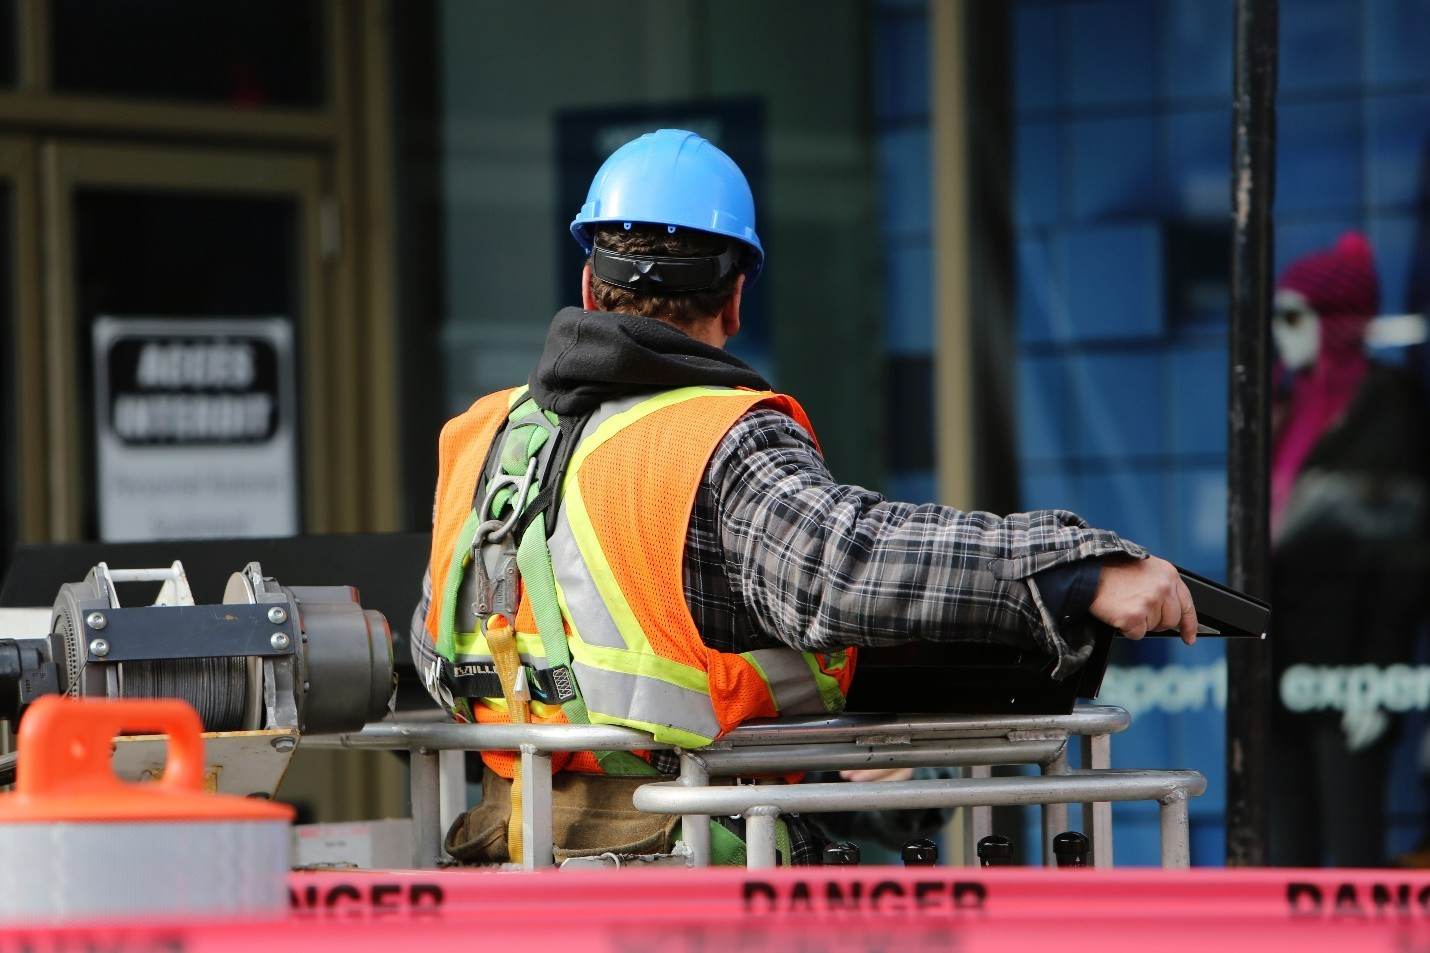 Workplace Accident Injury Lawyers in Brooklyn